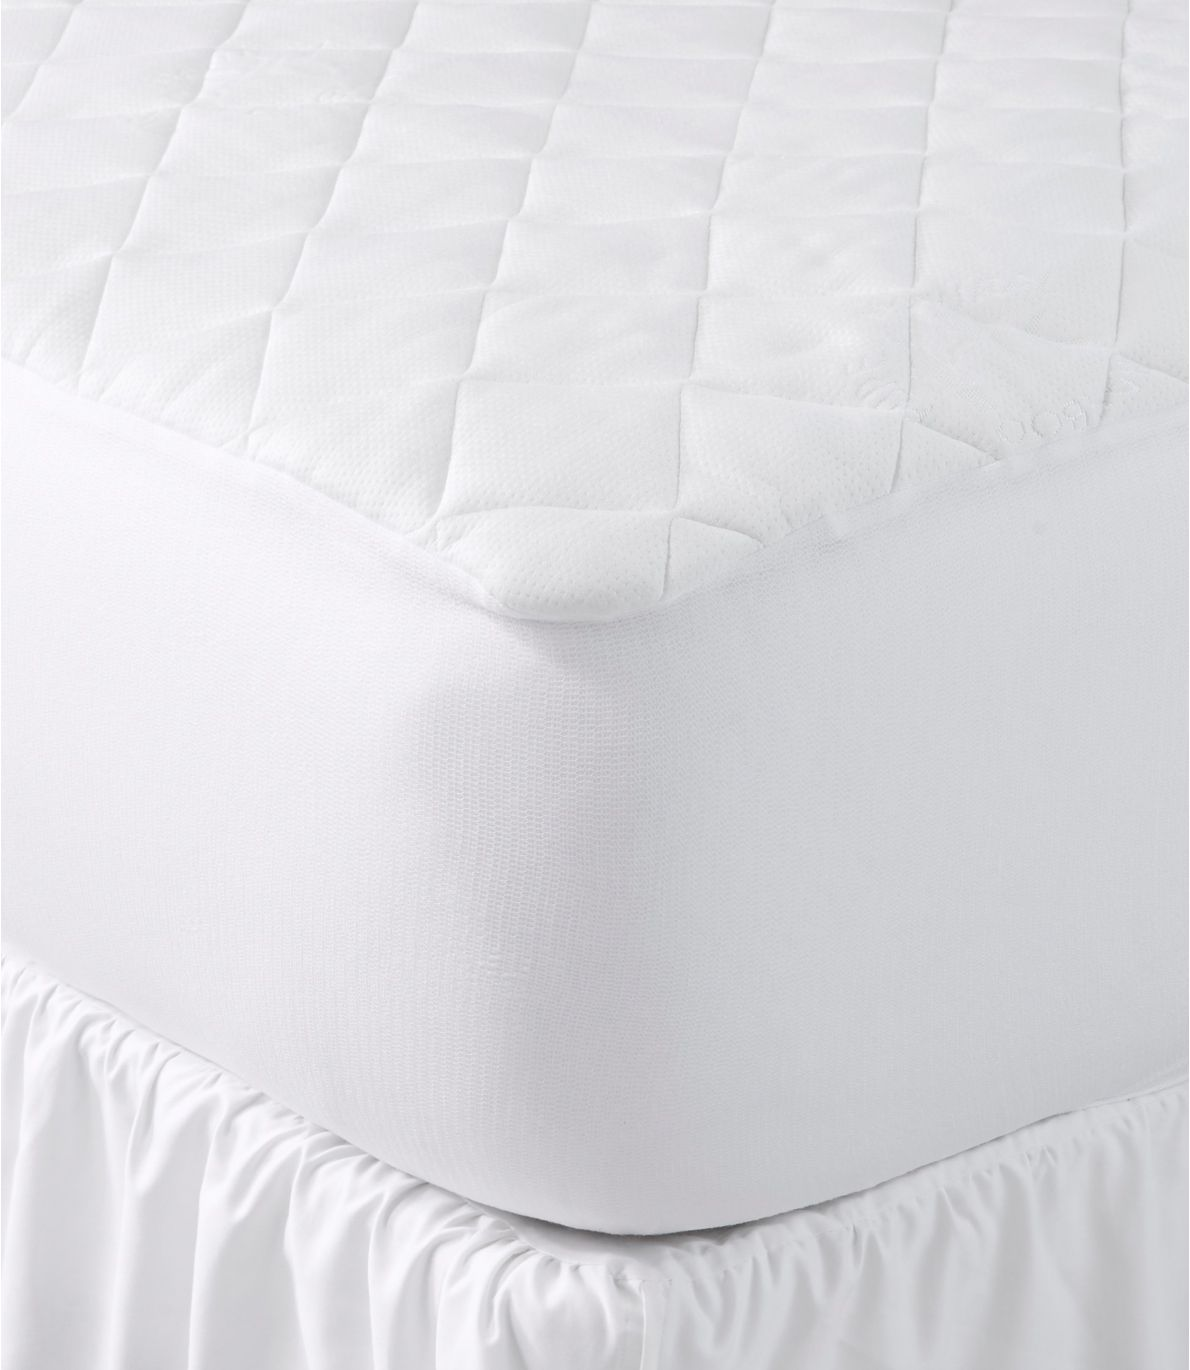 Knit Top Waterproof Mattress Pad